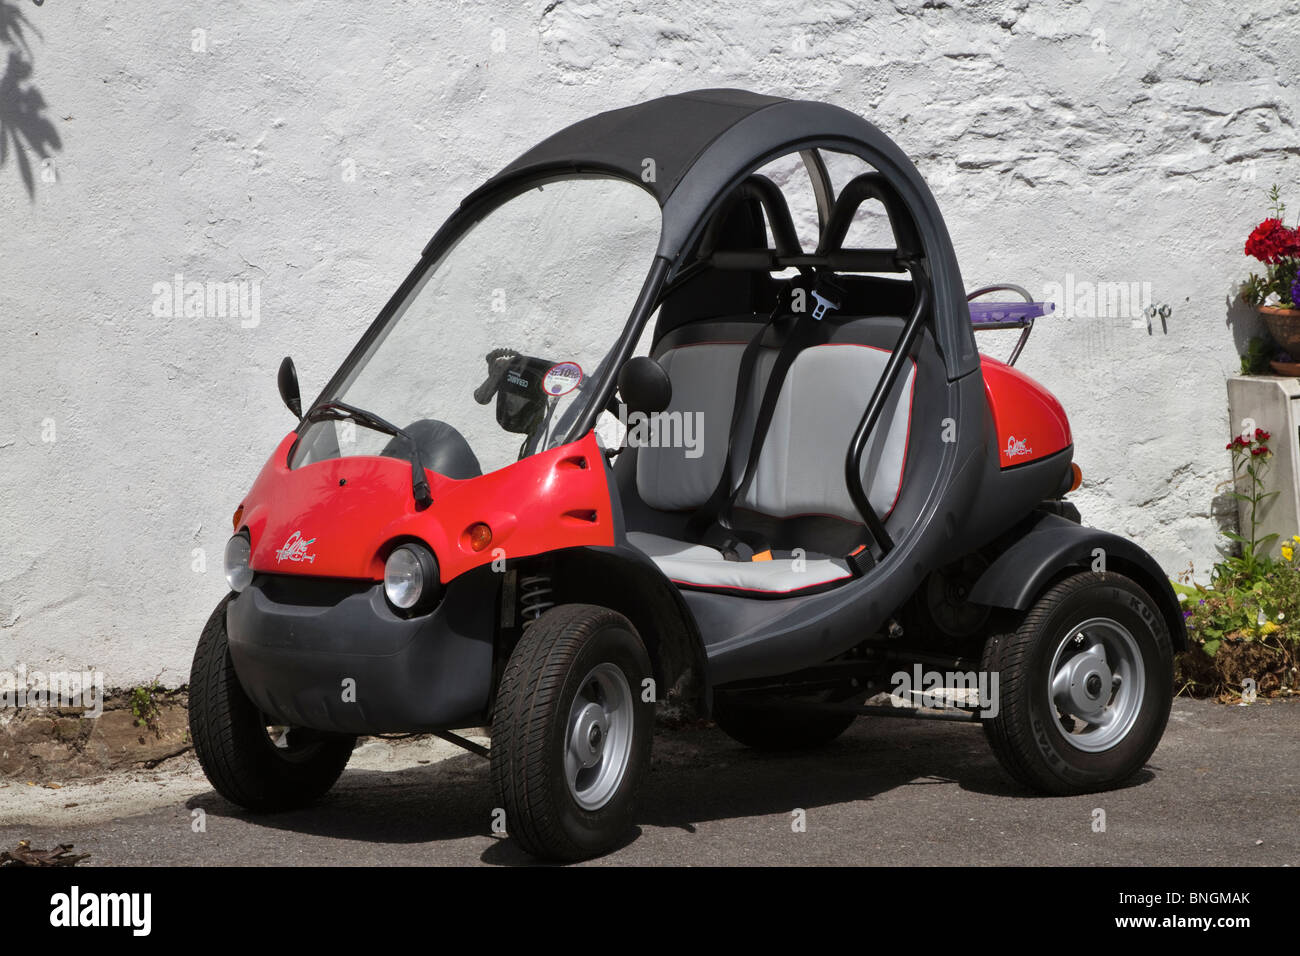 Quadricycle Stock Photos Amp Quadricycle Stock Images Alamy